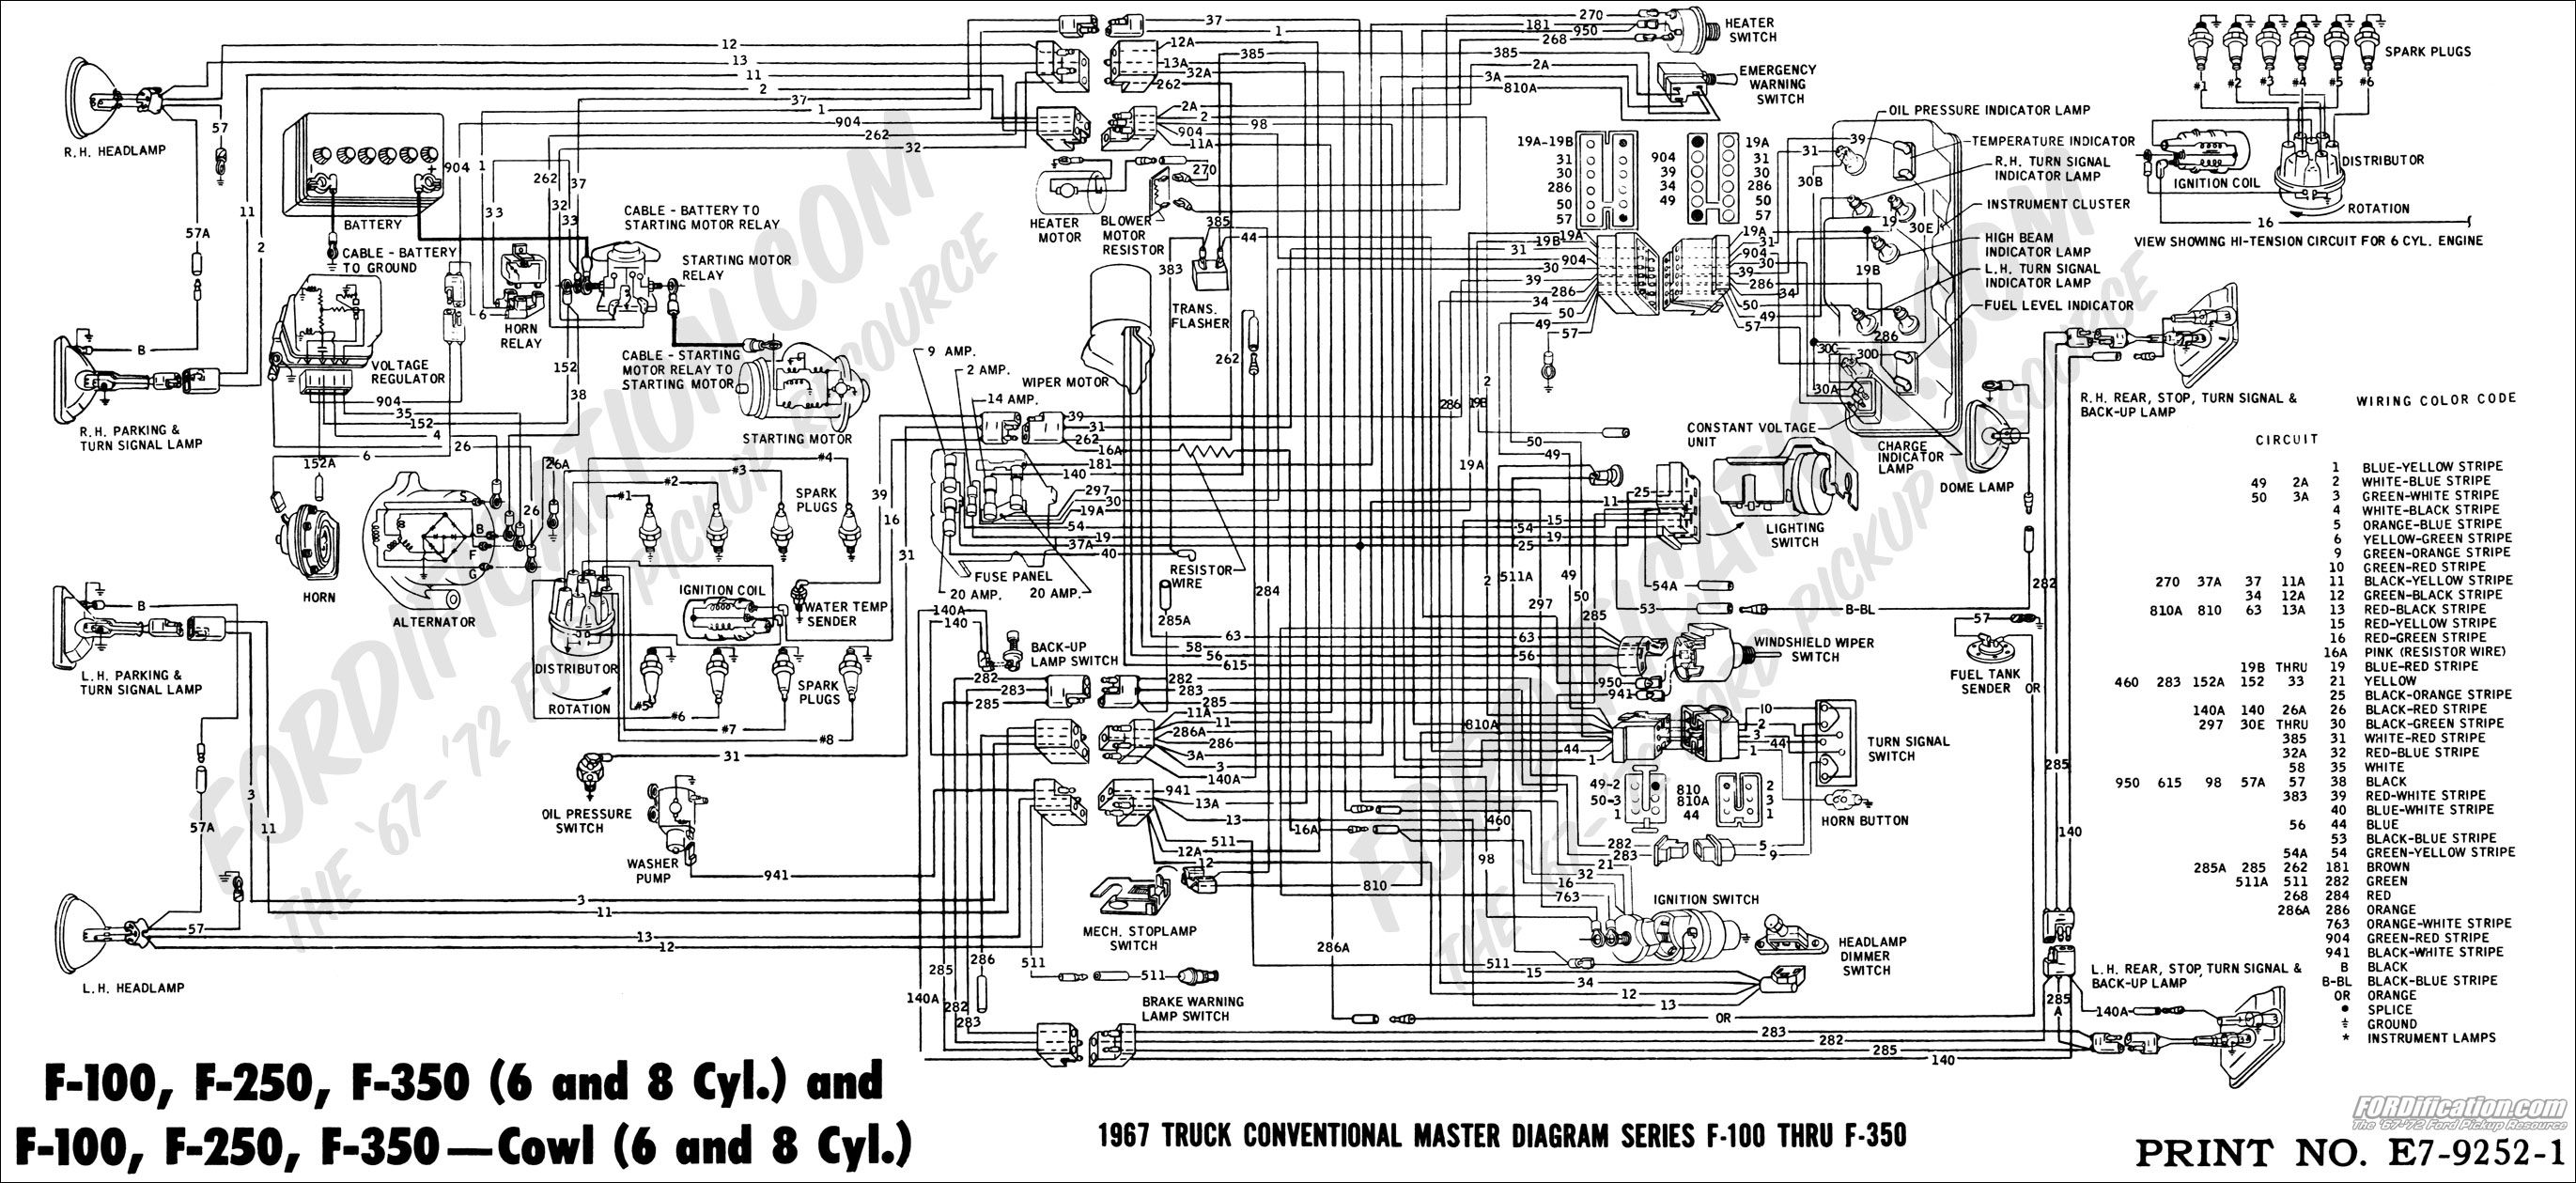 8e608320d8e6c71ff5bbdb2efdd7ada1 ford truck technical drawings and schematics section h wiring wiring diagrams for ford trucks at virtualis.co